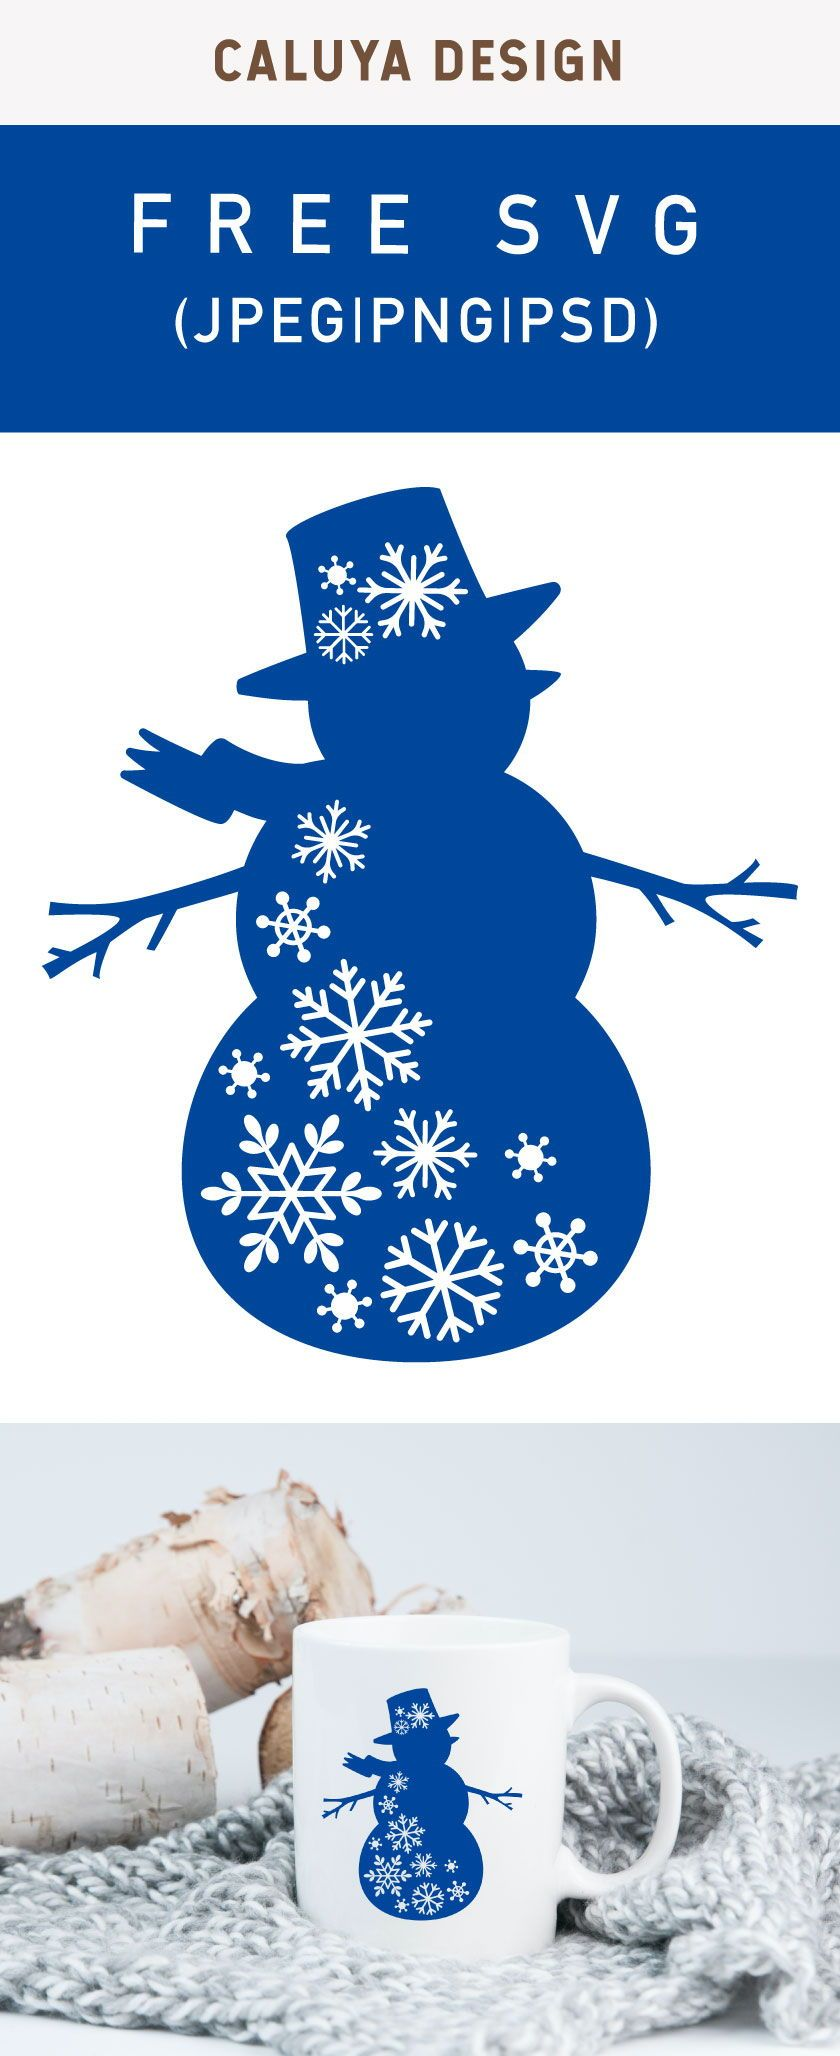 Free Snow Flake Snowman SVG, PNG, EPS & DXF by Christmas